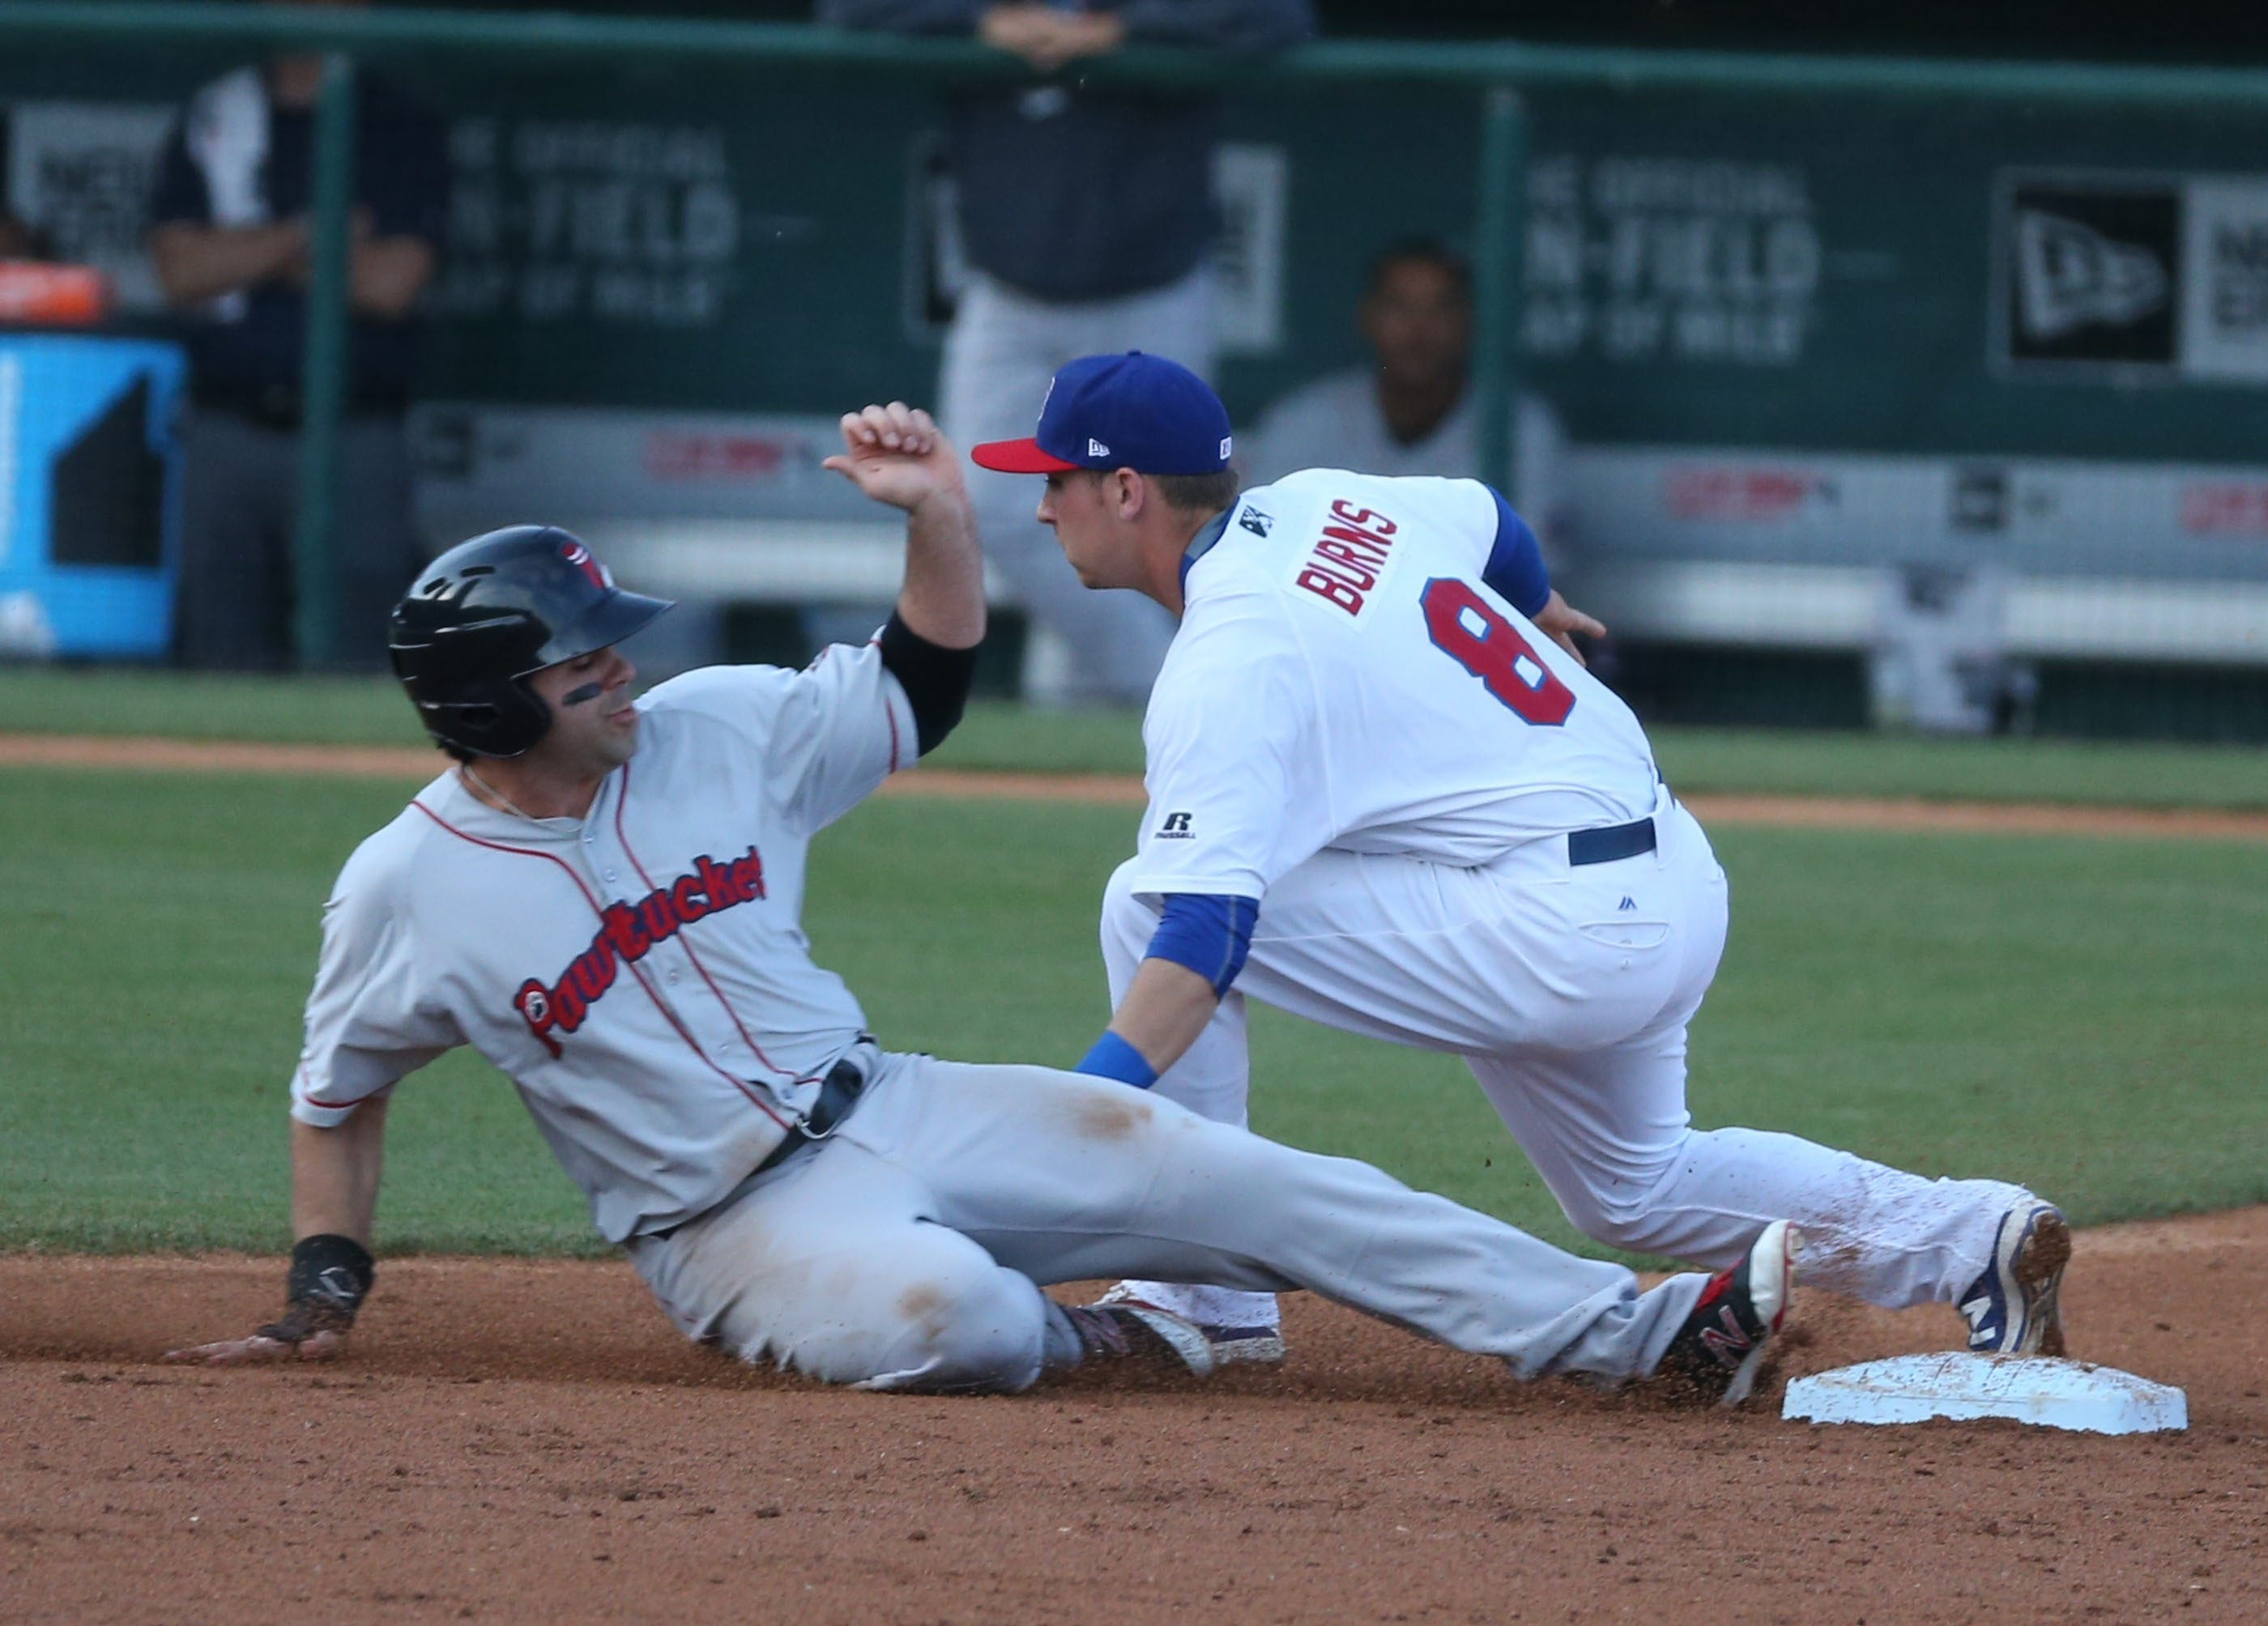 Pawtucket's Ryan LaMarre is tagged out while stealing by Buffalo's Andy Burns Friday at Coca-Cola Field.